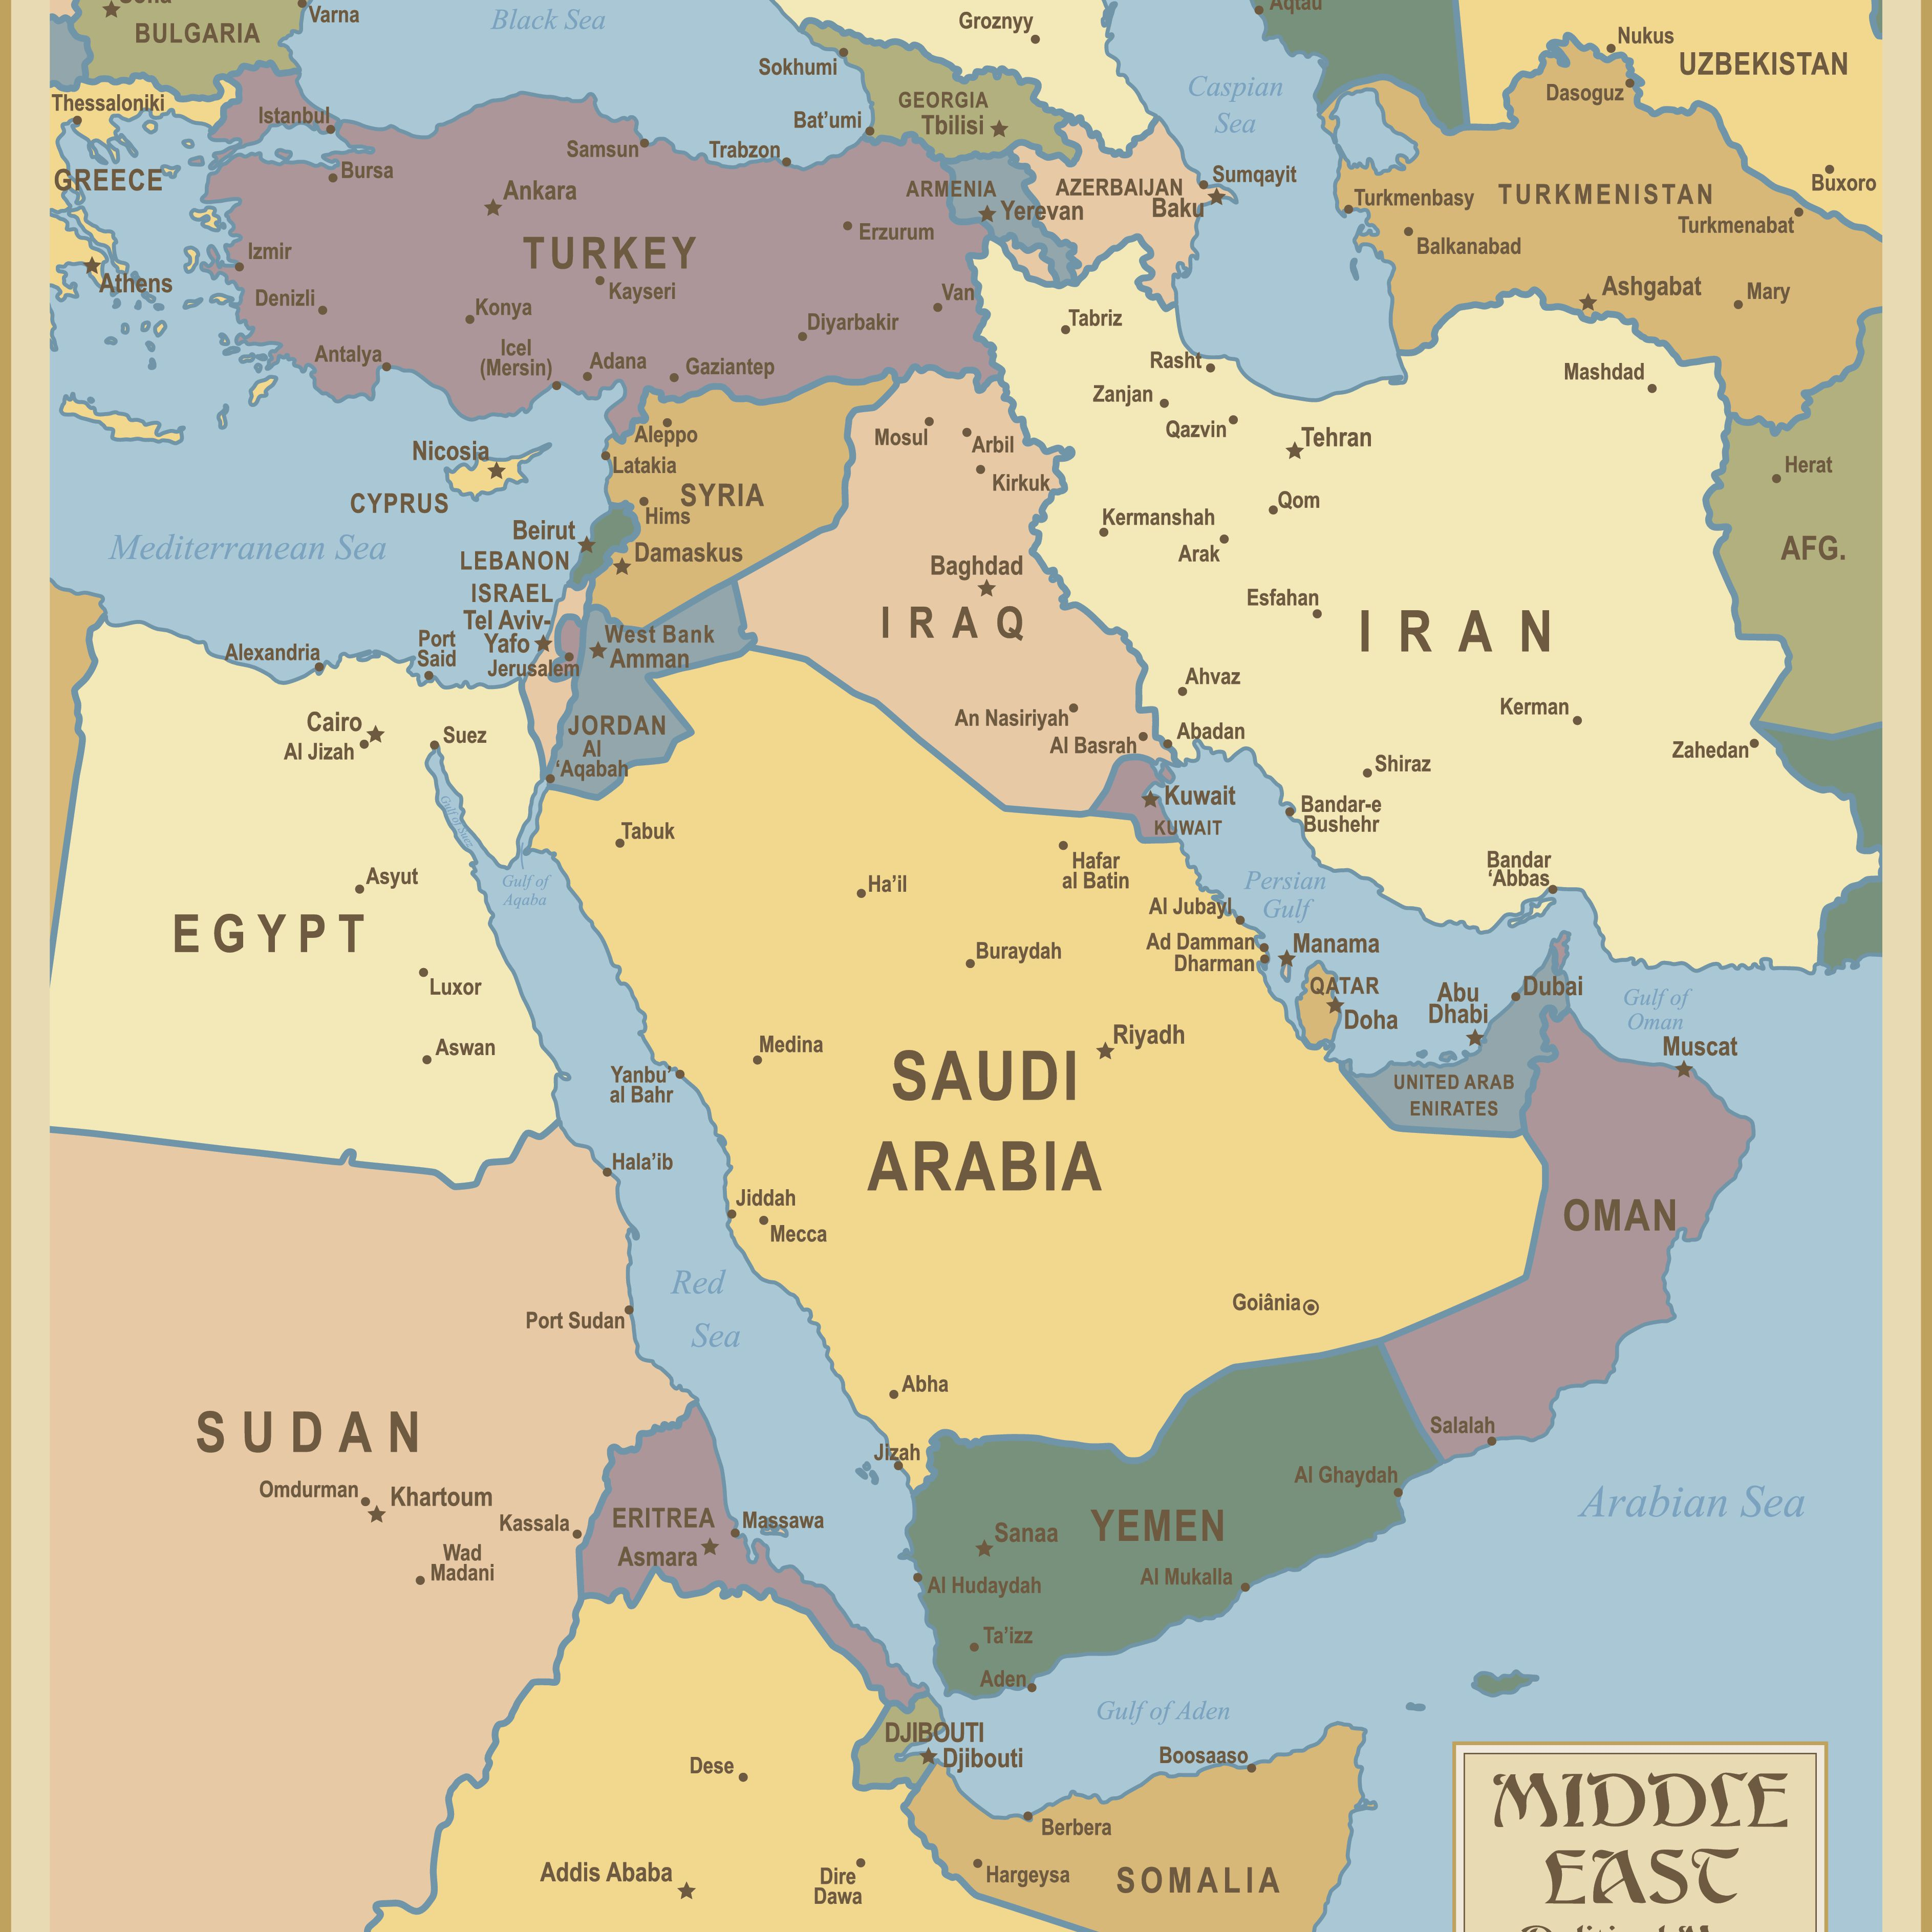 Red Sea and Southwest Asia Maps - Middle East Maps